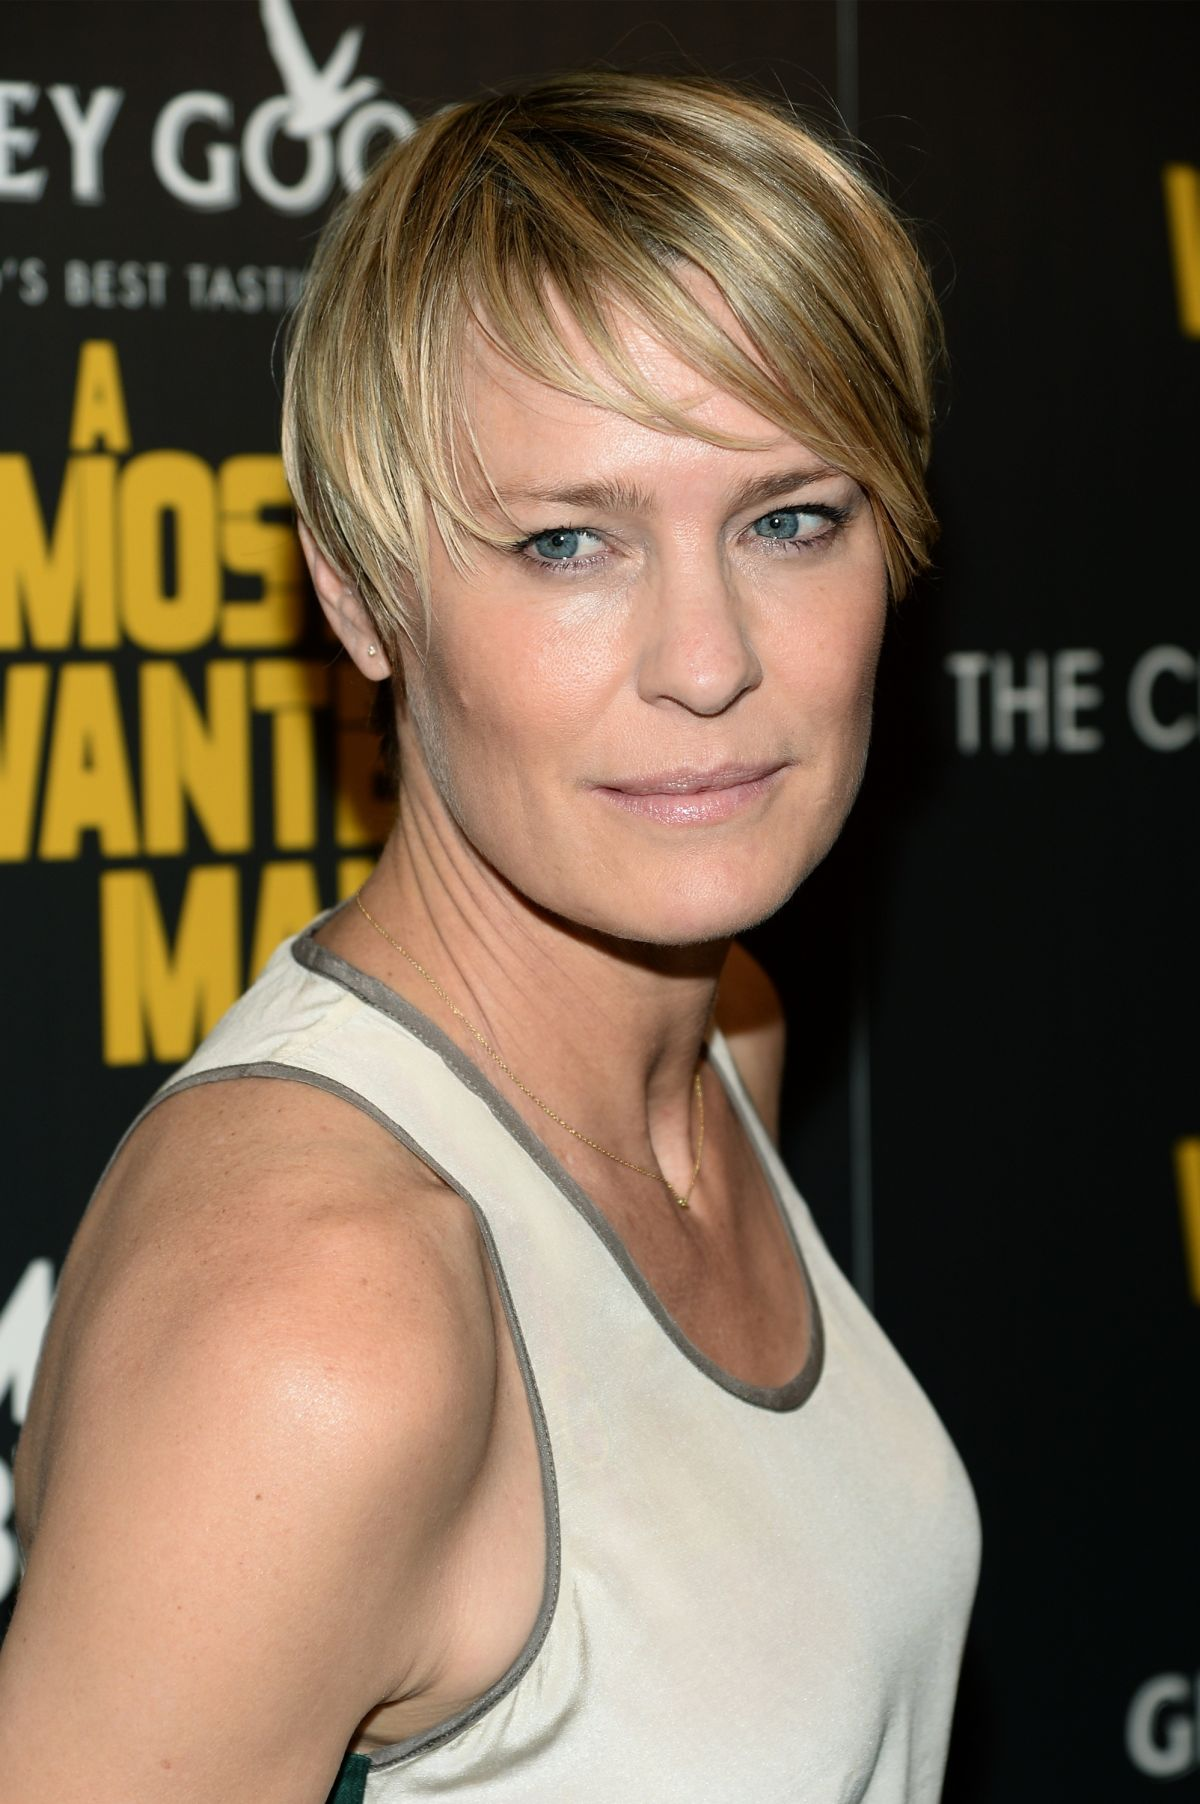 ROBIN WRIGHT at A Most Wanted Man Premiere in New York